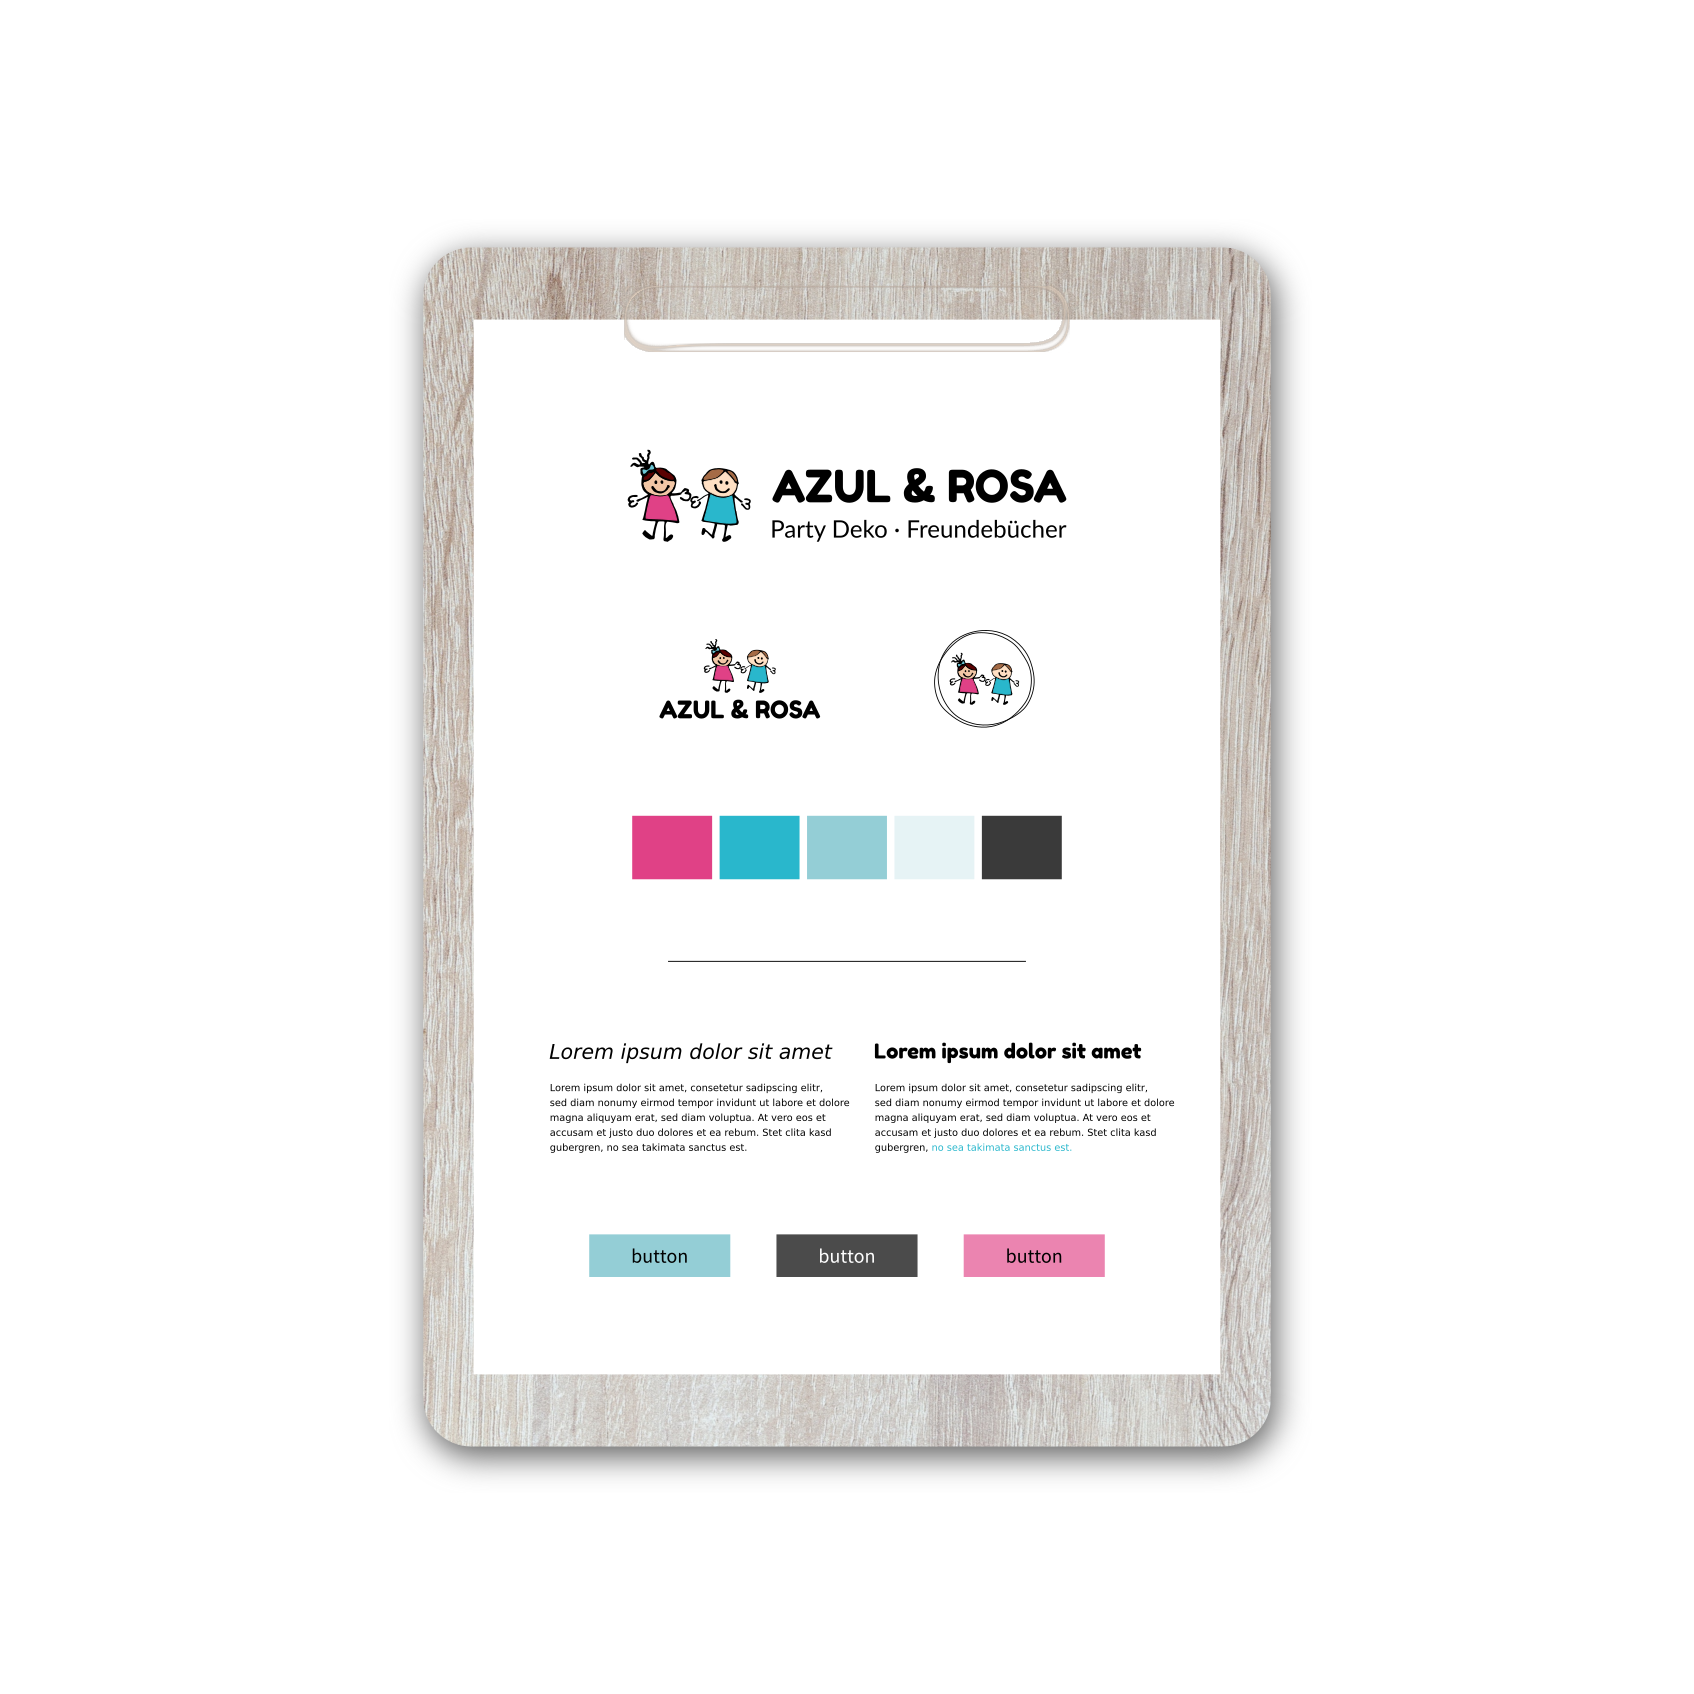 Azul & Rosa | Brand Strategy & Web Design by Red Ruby Sphere